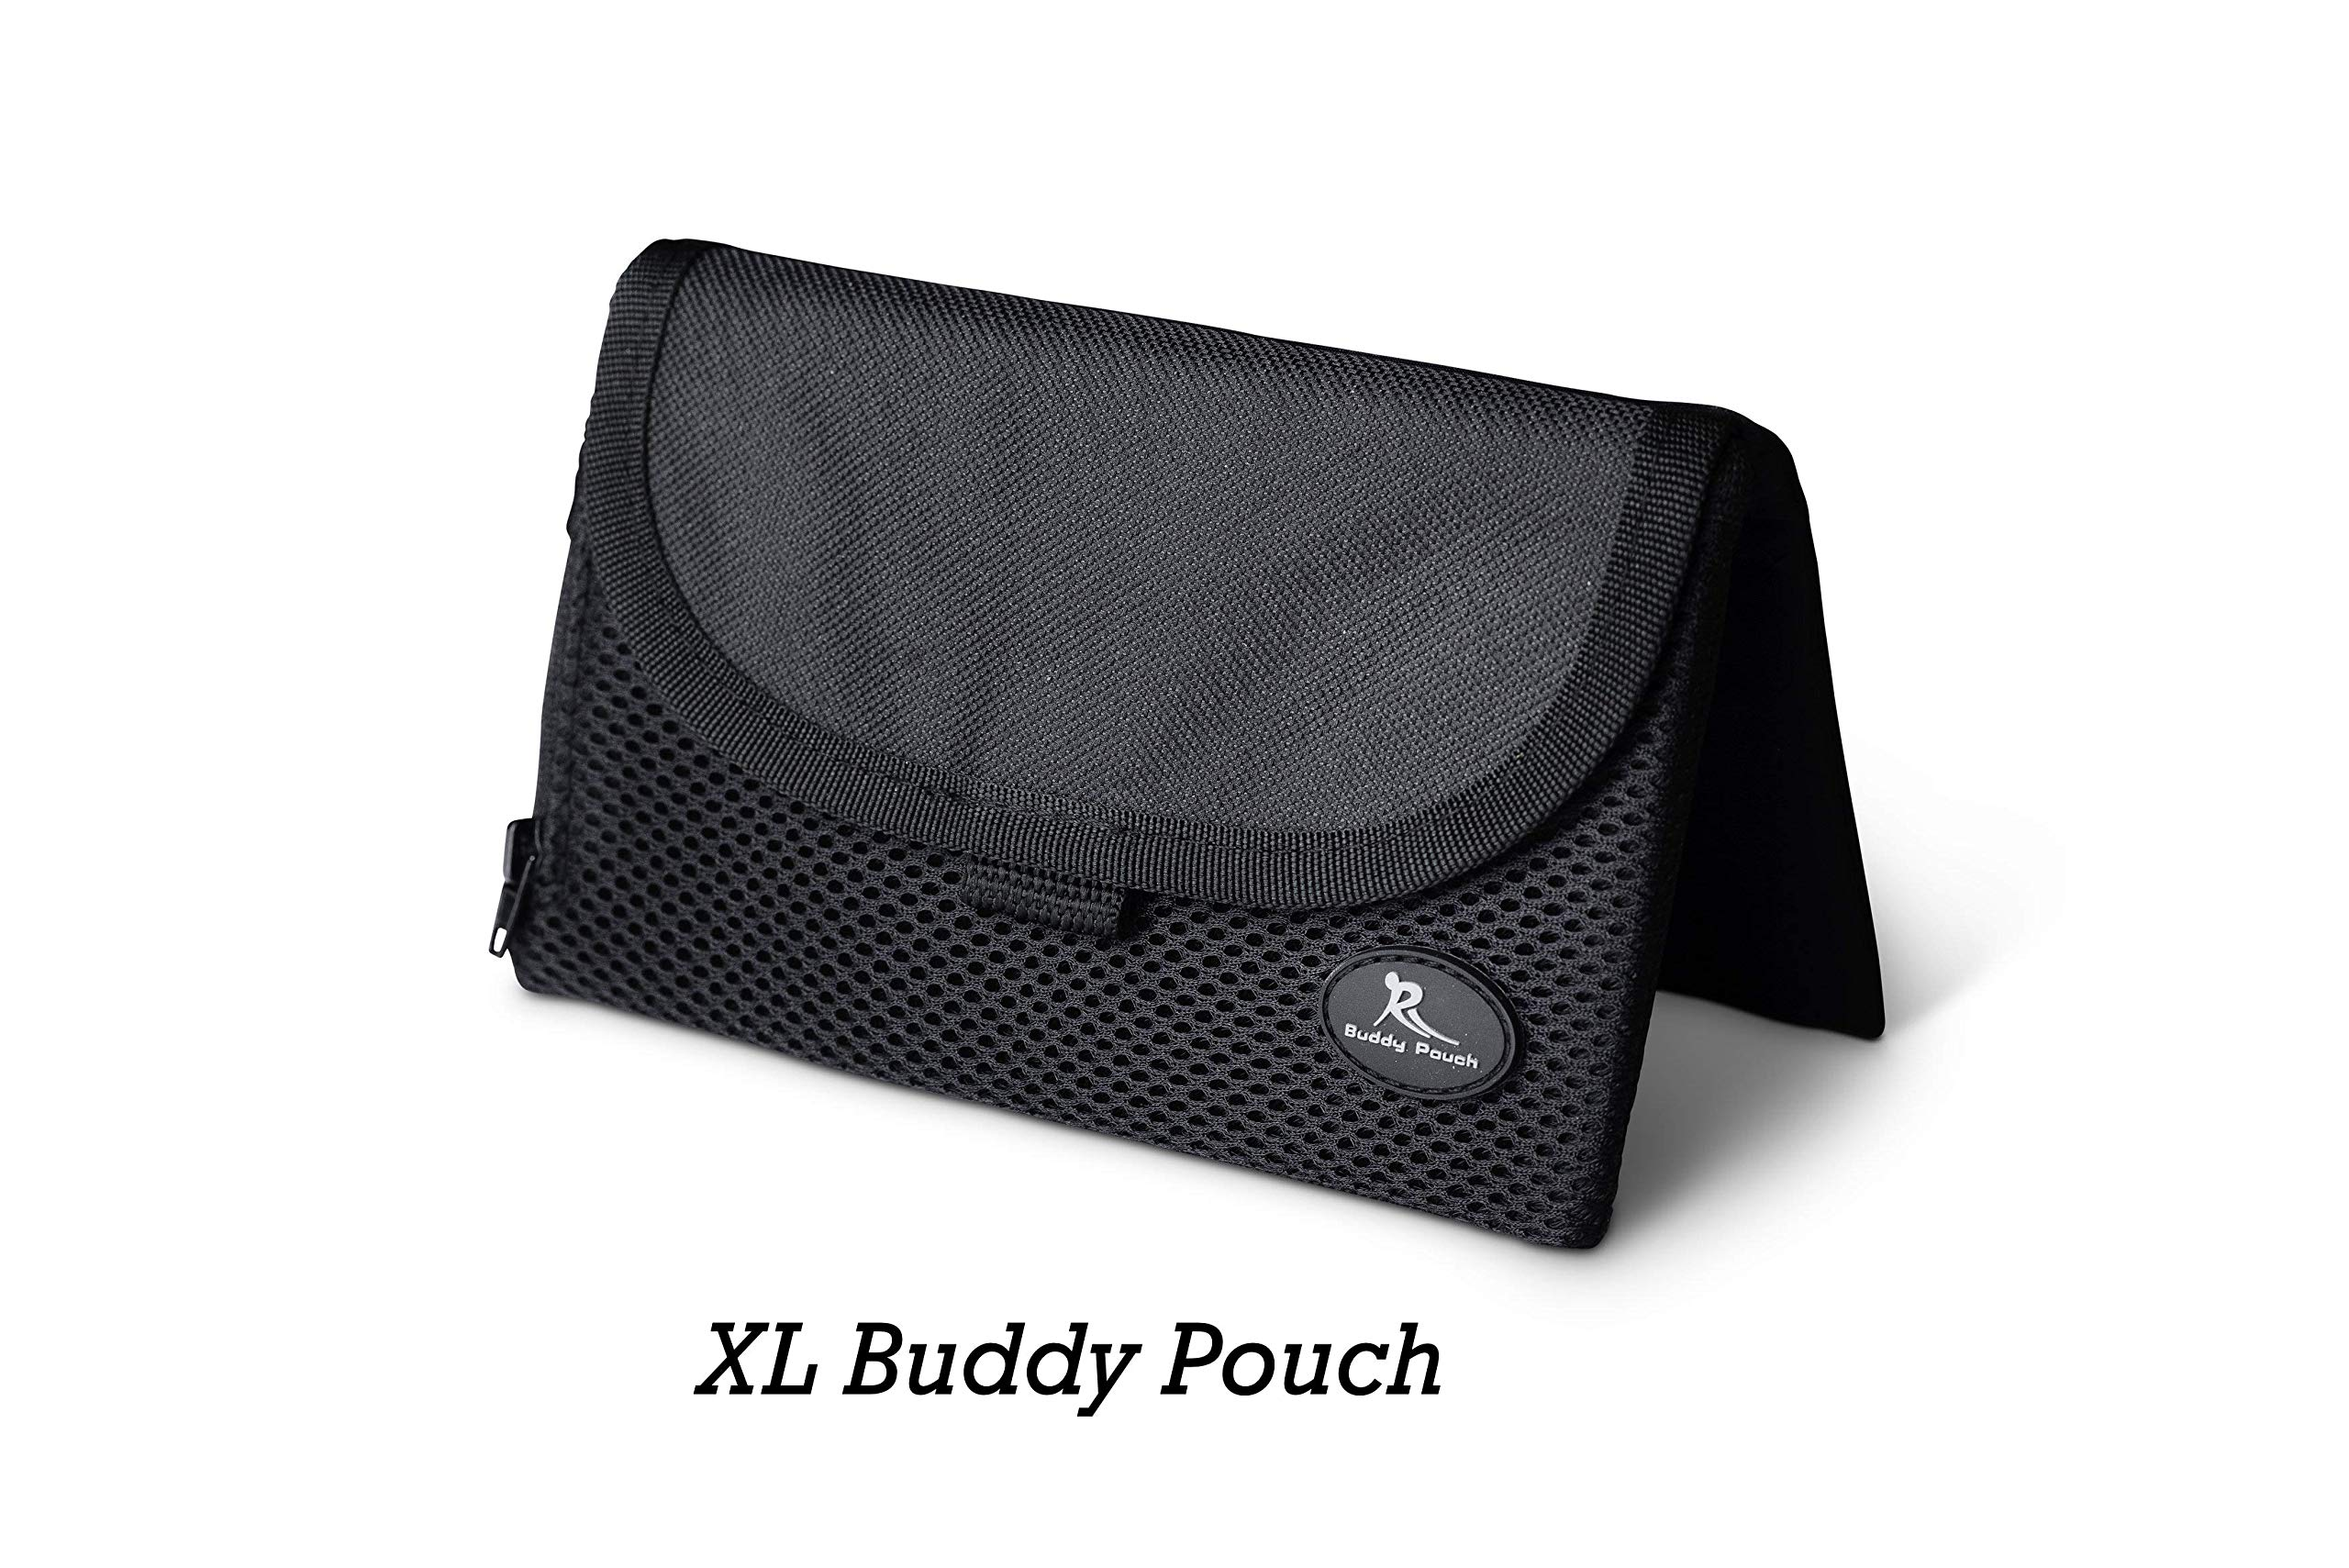 Running Buddy [Highly Rated XL Buddy Pouch - Black